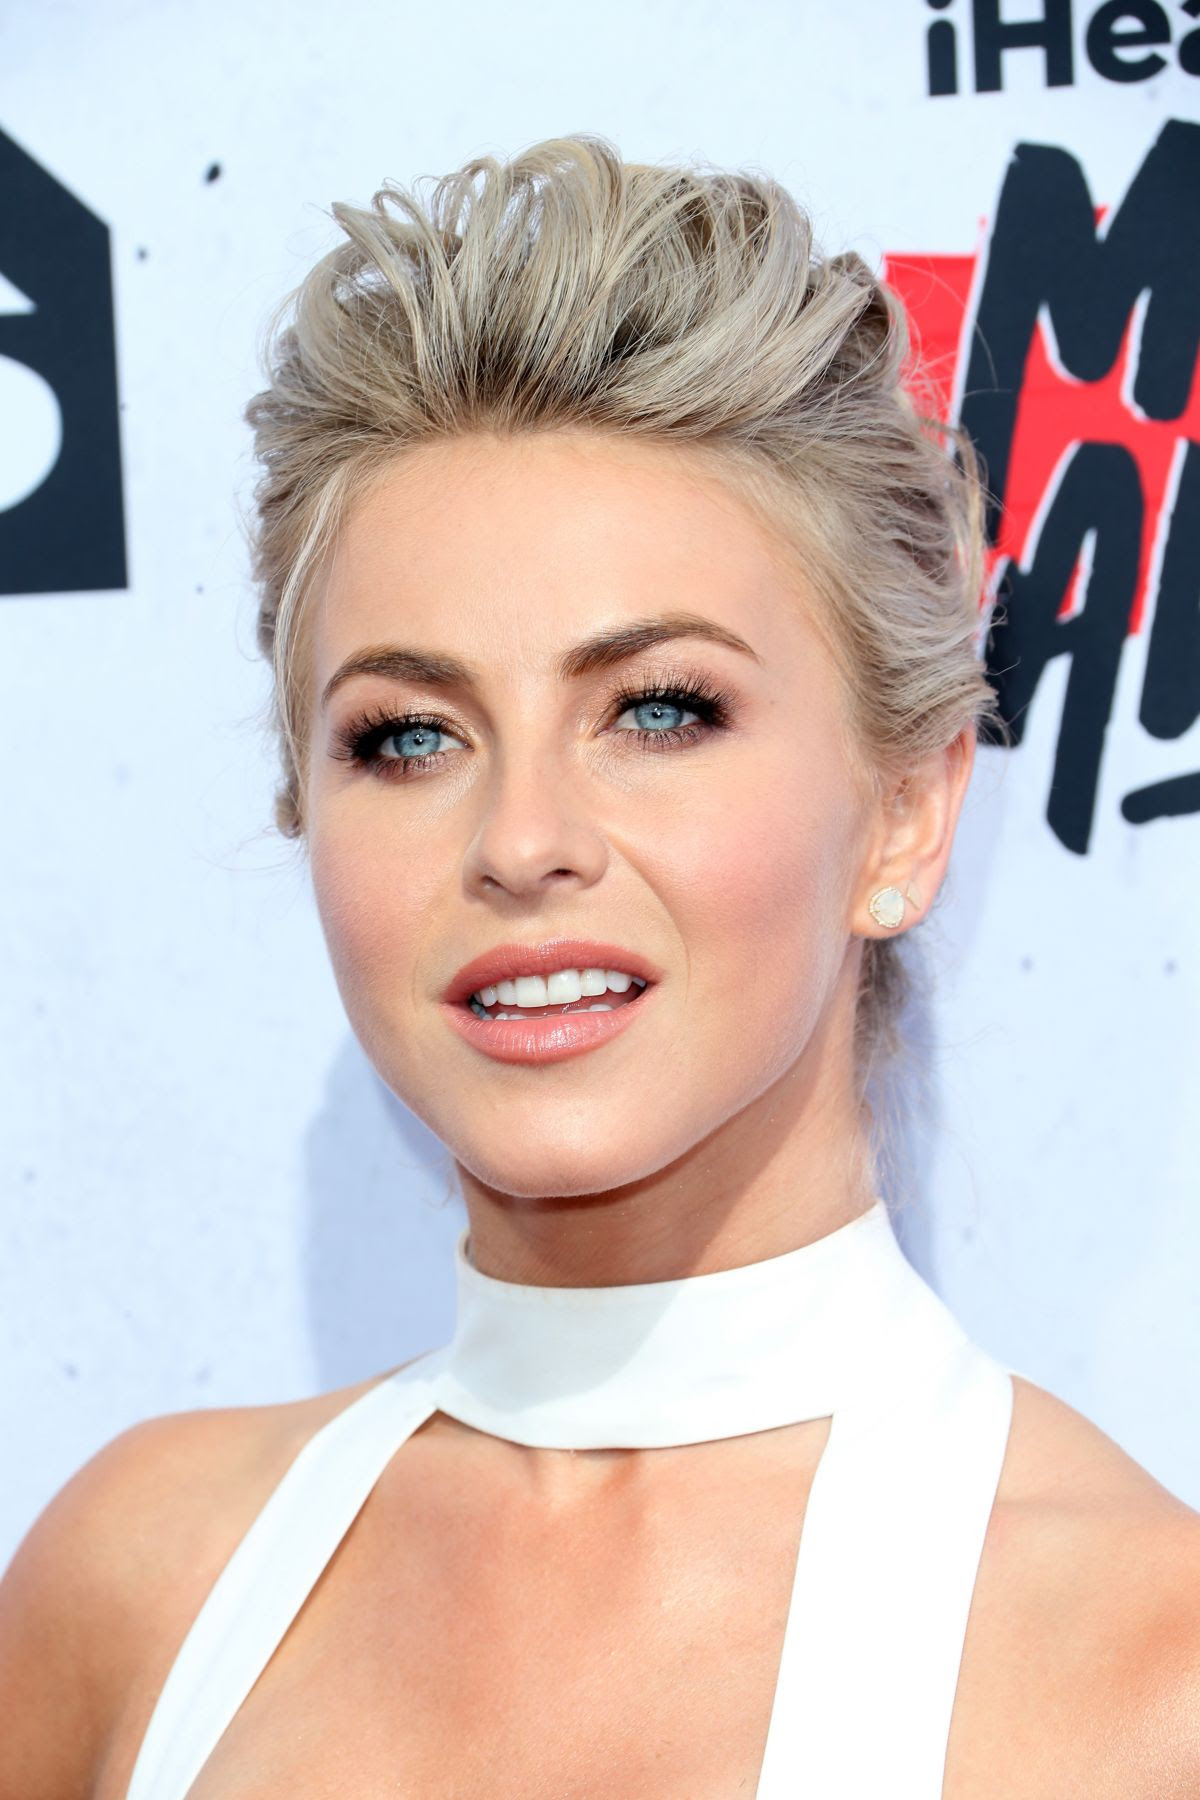 JULIANNE HOUGH at iHeartRadio Music Awards in Los Angeles 04/03/2016